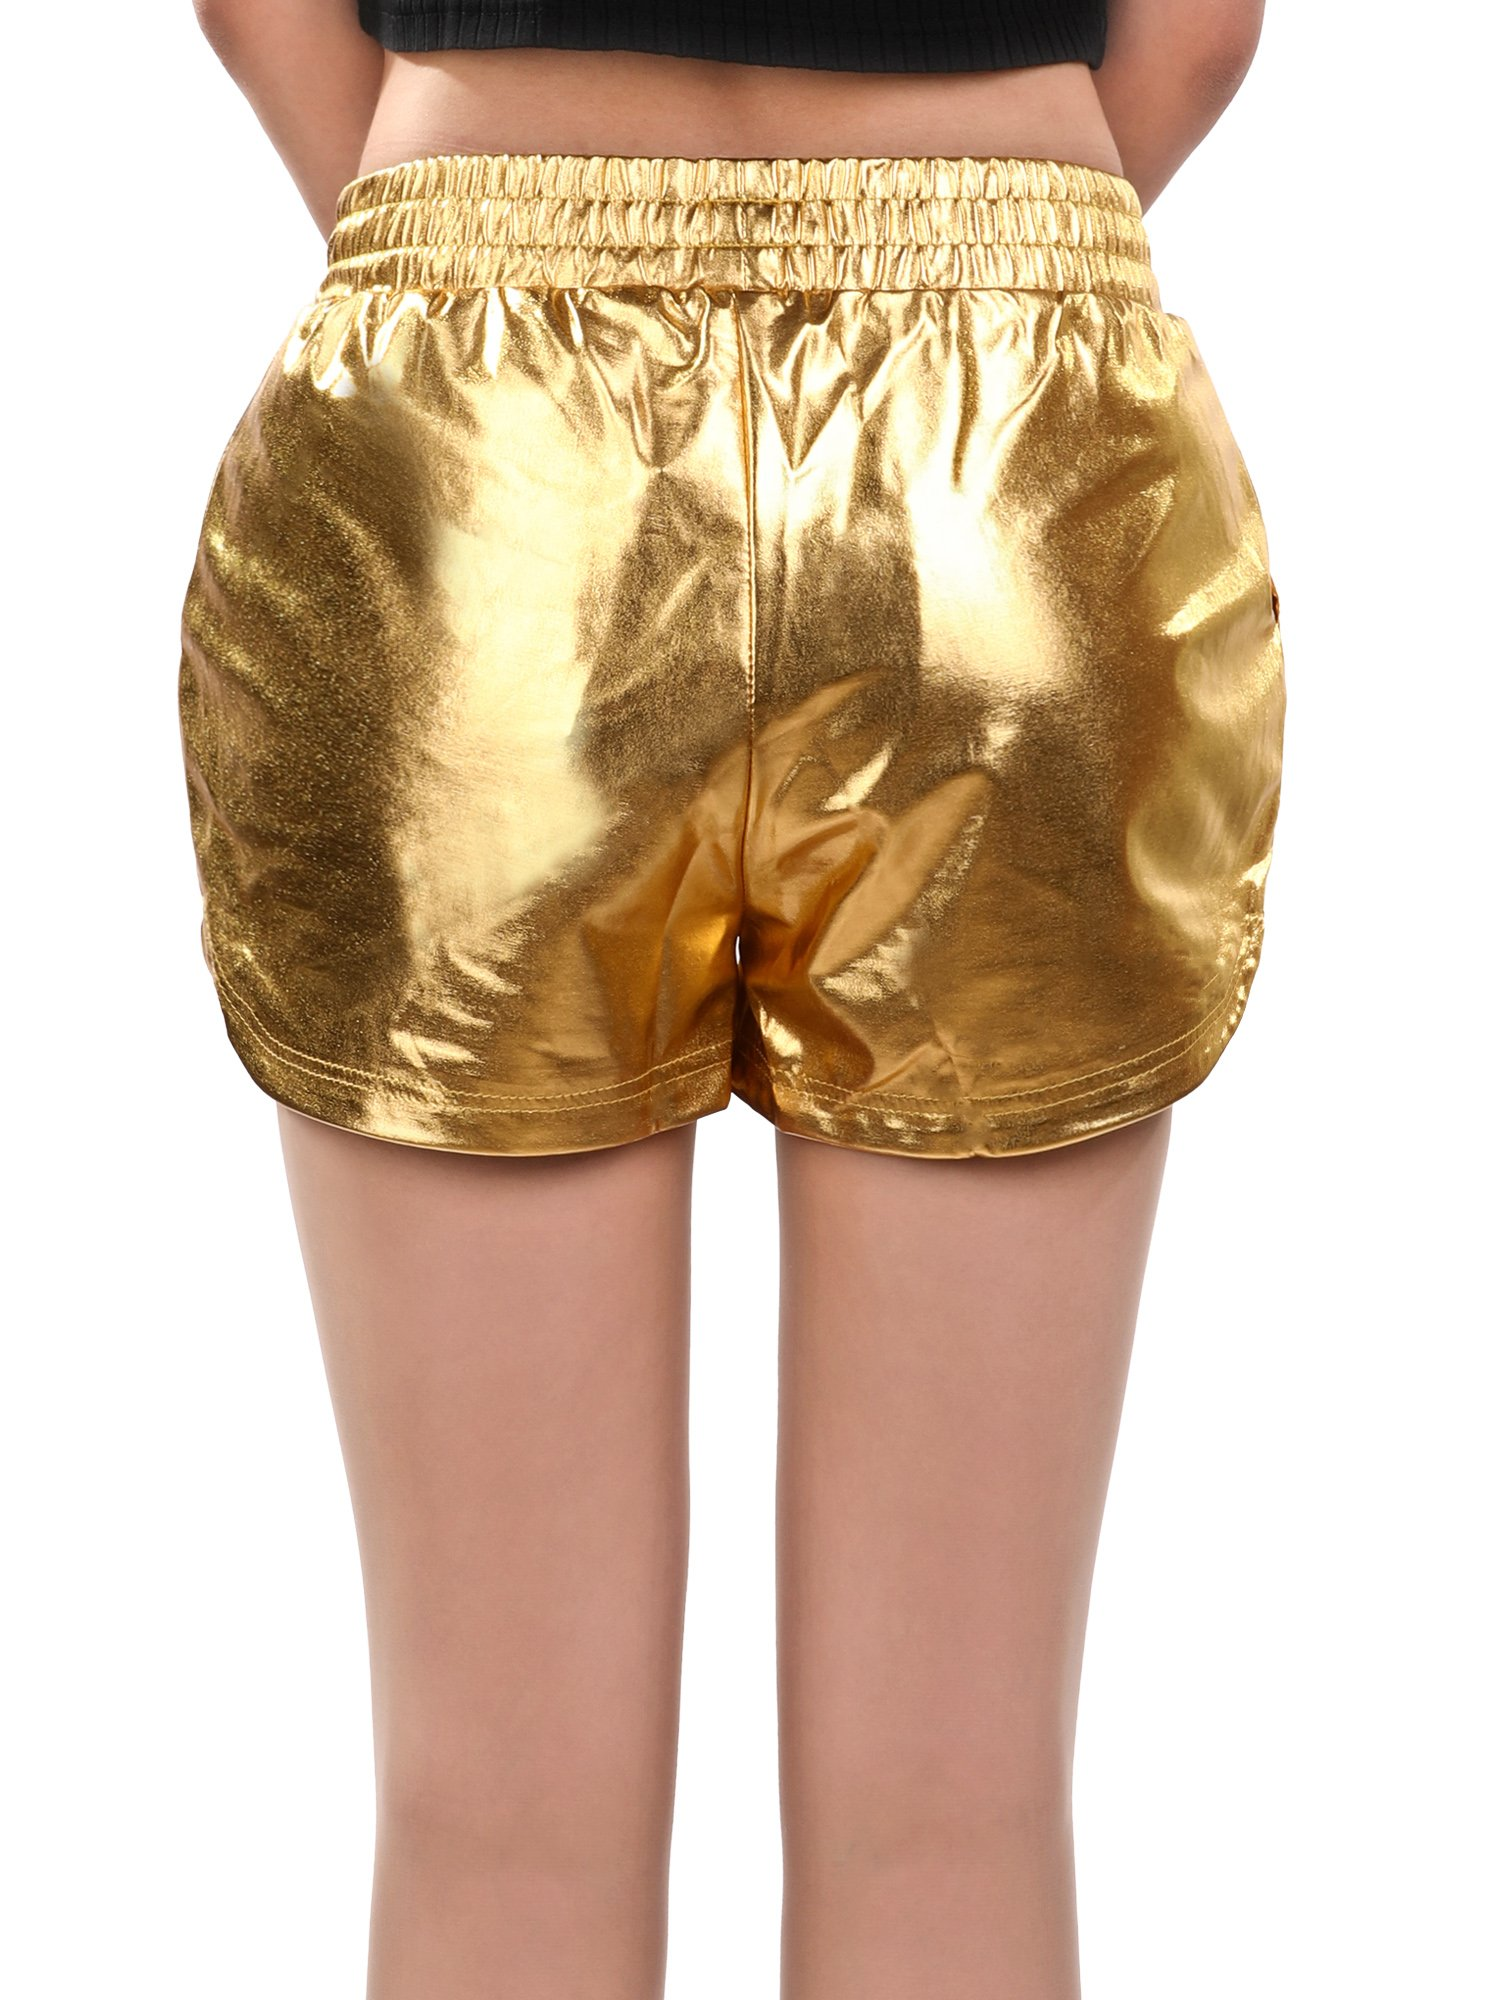 Skylety Metallic Shiny Shorts Women Sparkly Hot Shorts Girl Yoga Outfit Casual Loose Shorts (L Size, Gold) by Skylety (Image #5)